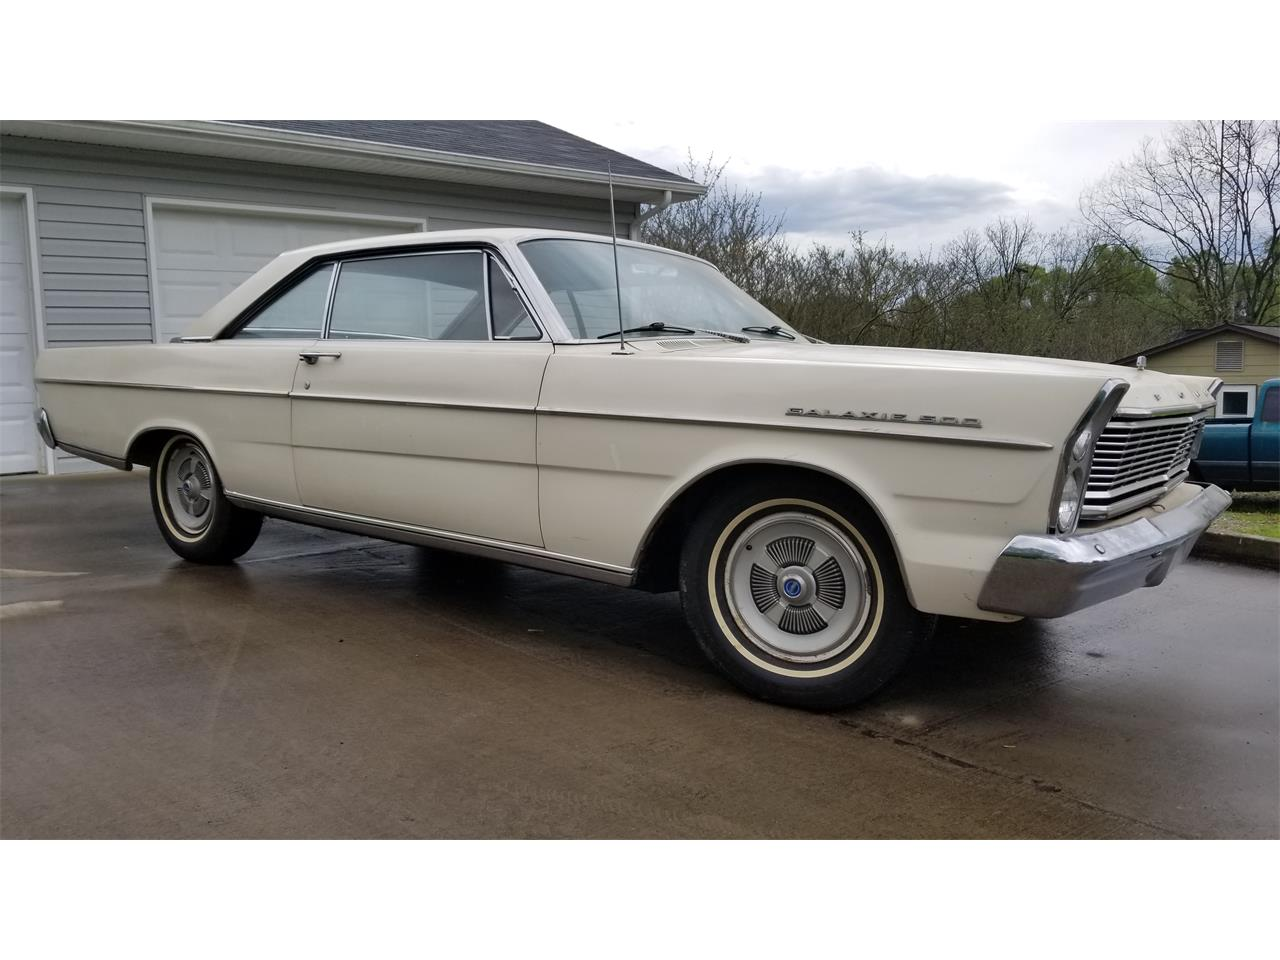 Large Picture of Classic 1965 Ford Galaxie 500 Offered by a Private Seller - PXPB